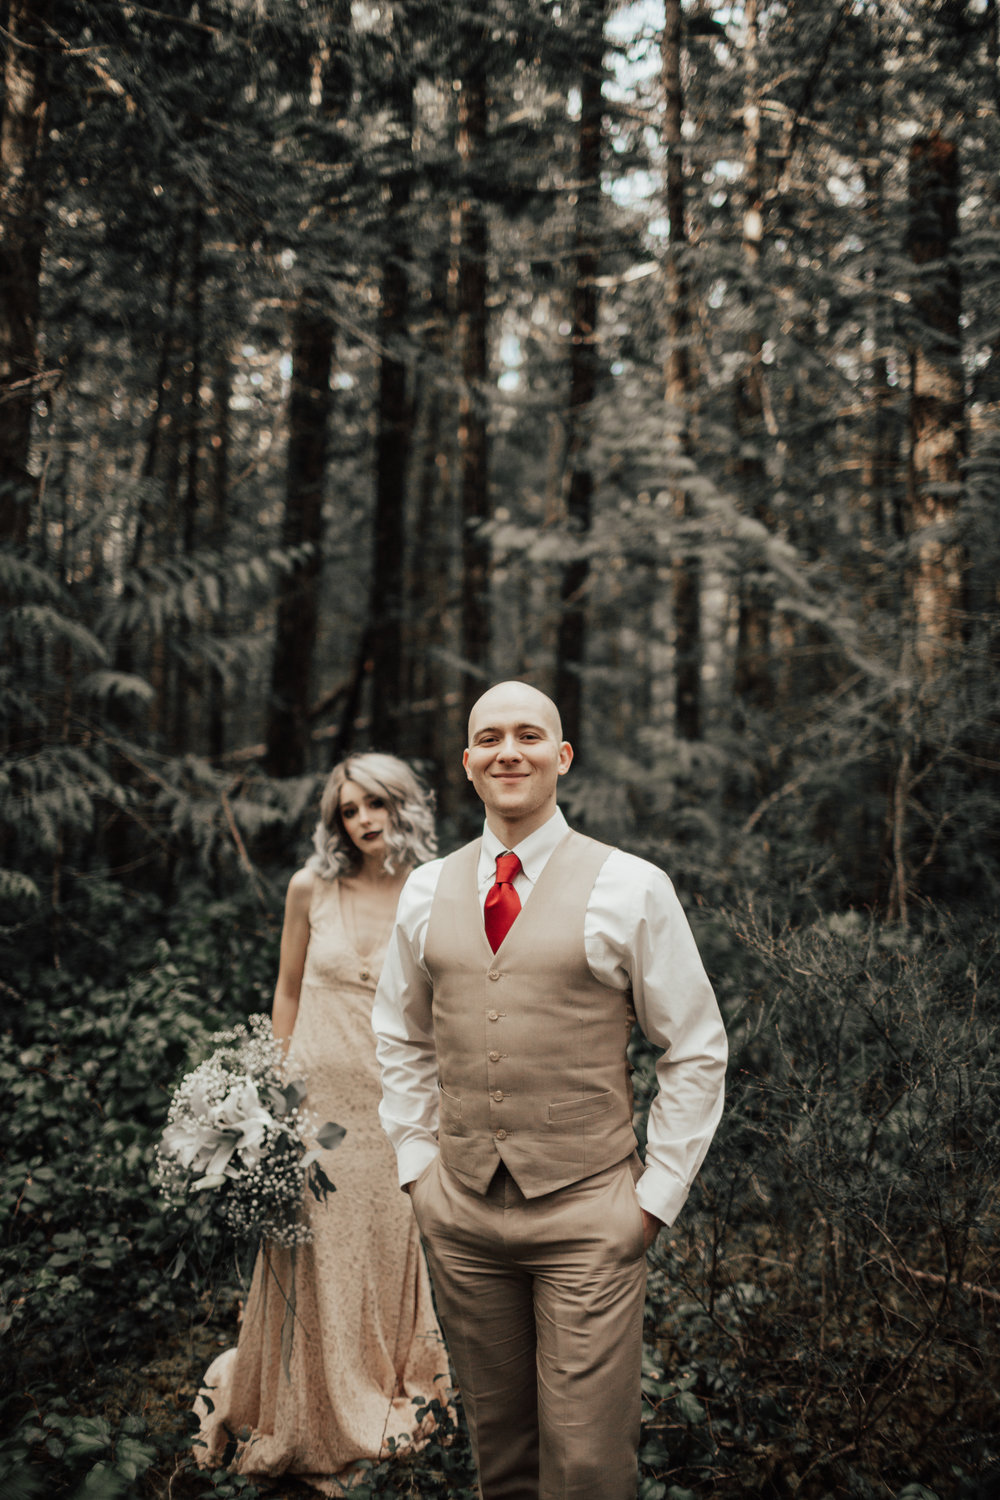 Port Angeles-PNW-Sequim-Portrait-wedding-elopement-photographer-kayladawnphoto-kayla dawn photography-olympic peninsula-portraiture66.jpg